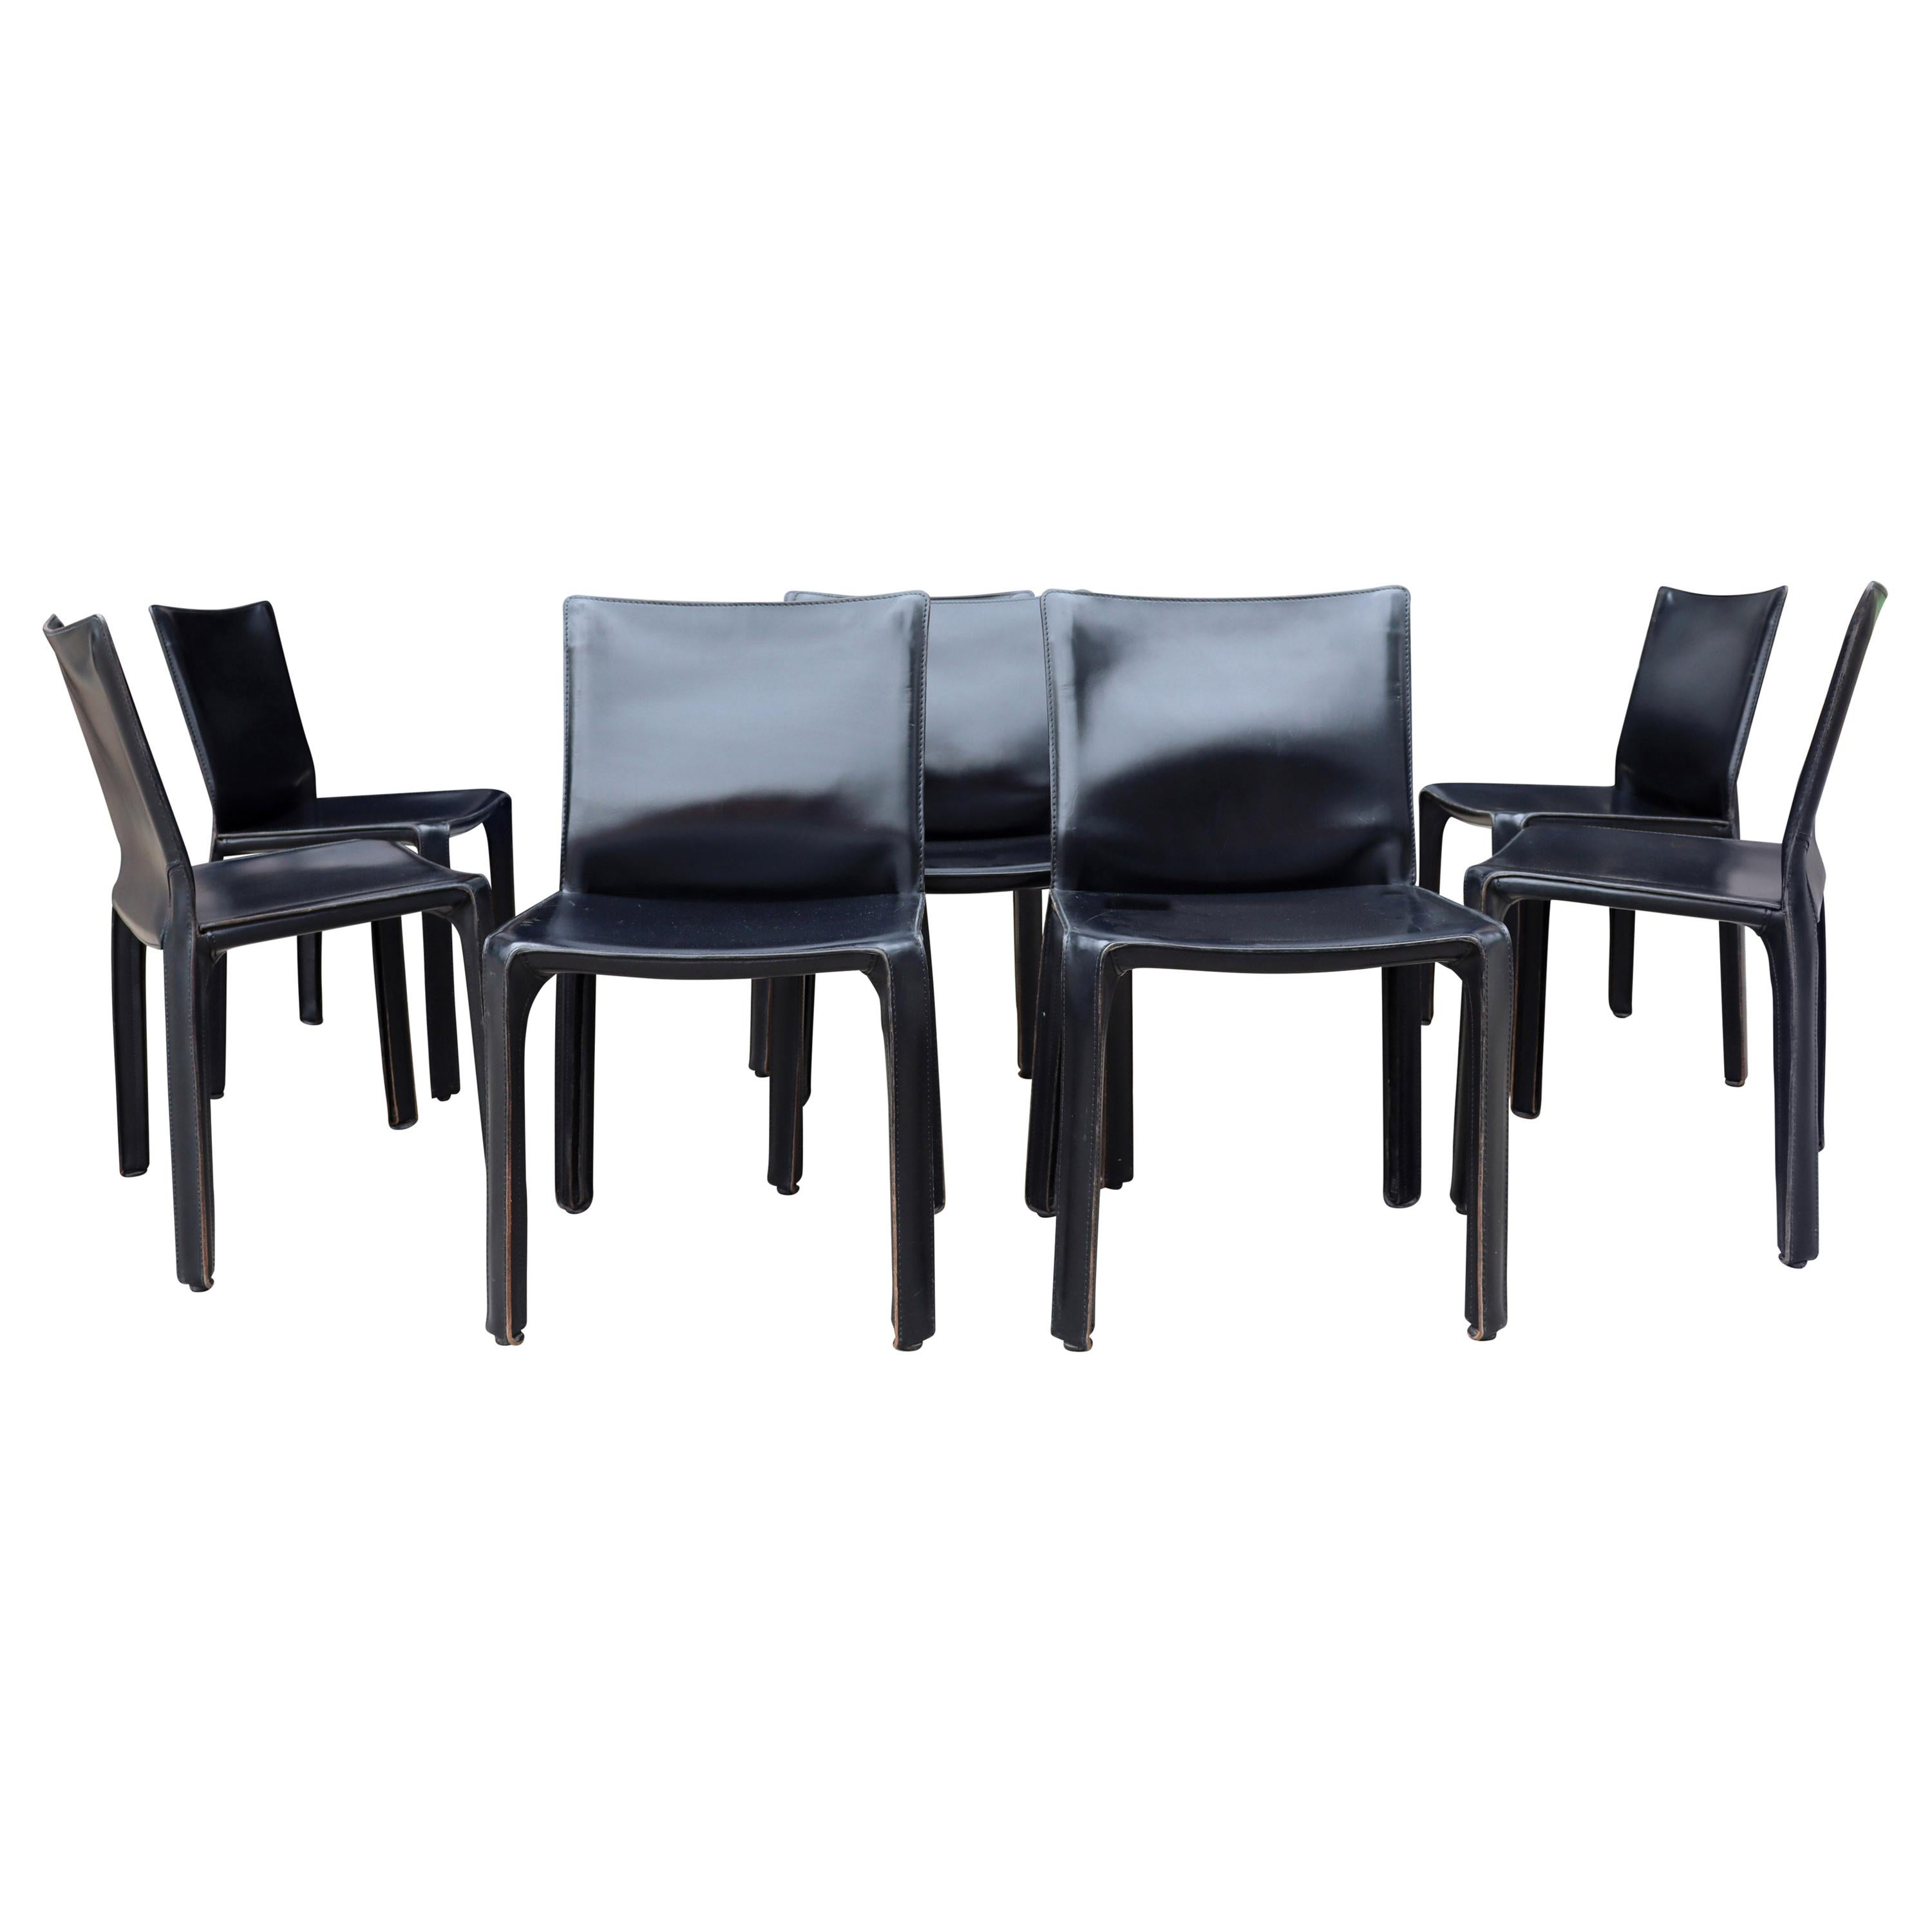 Midcentury Cassina Cab Chairs by Mario Bellini